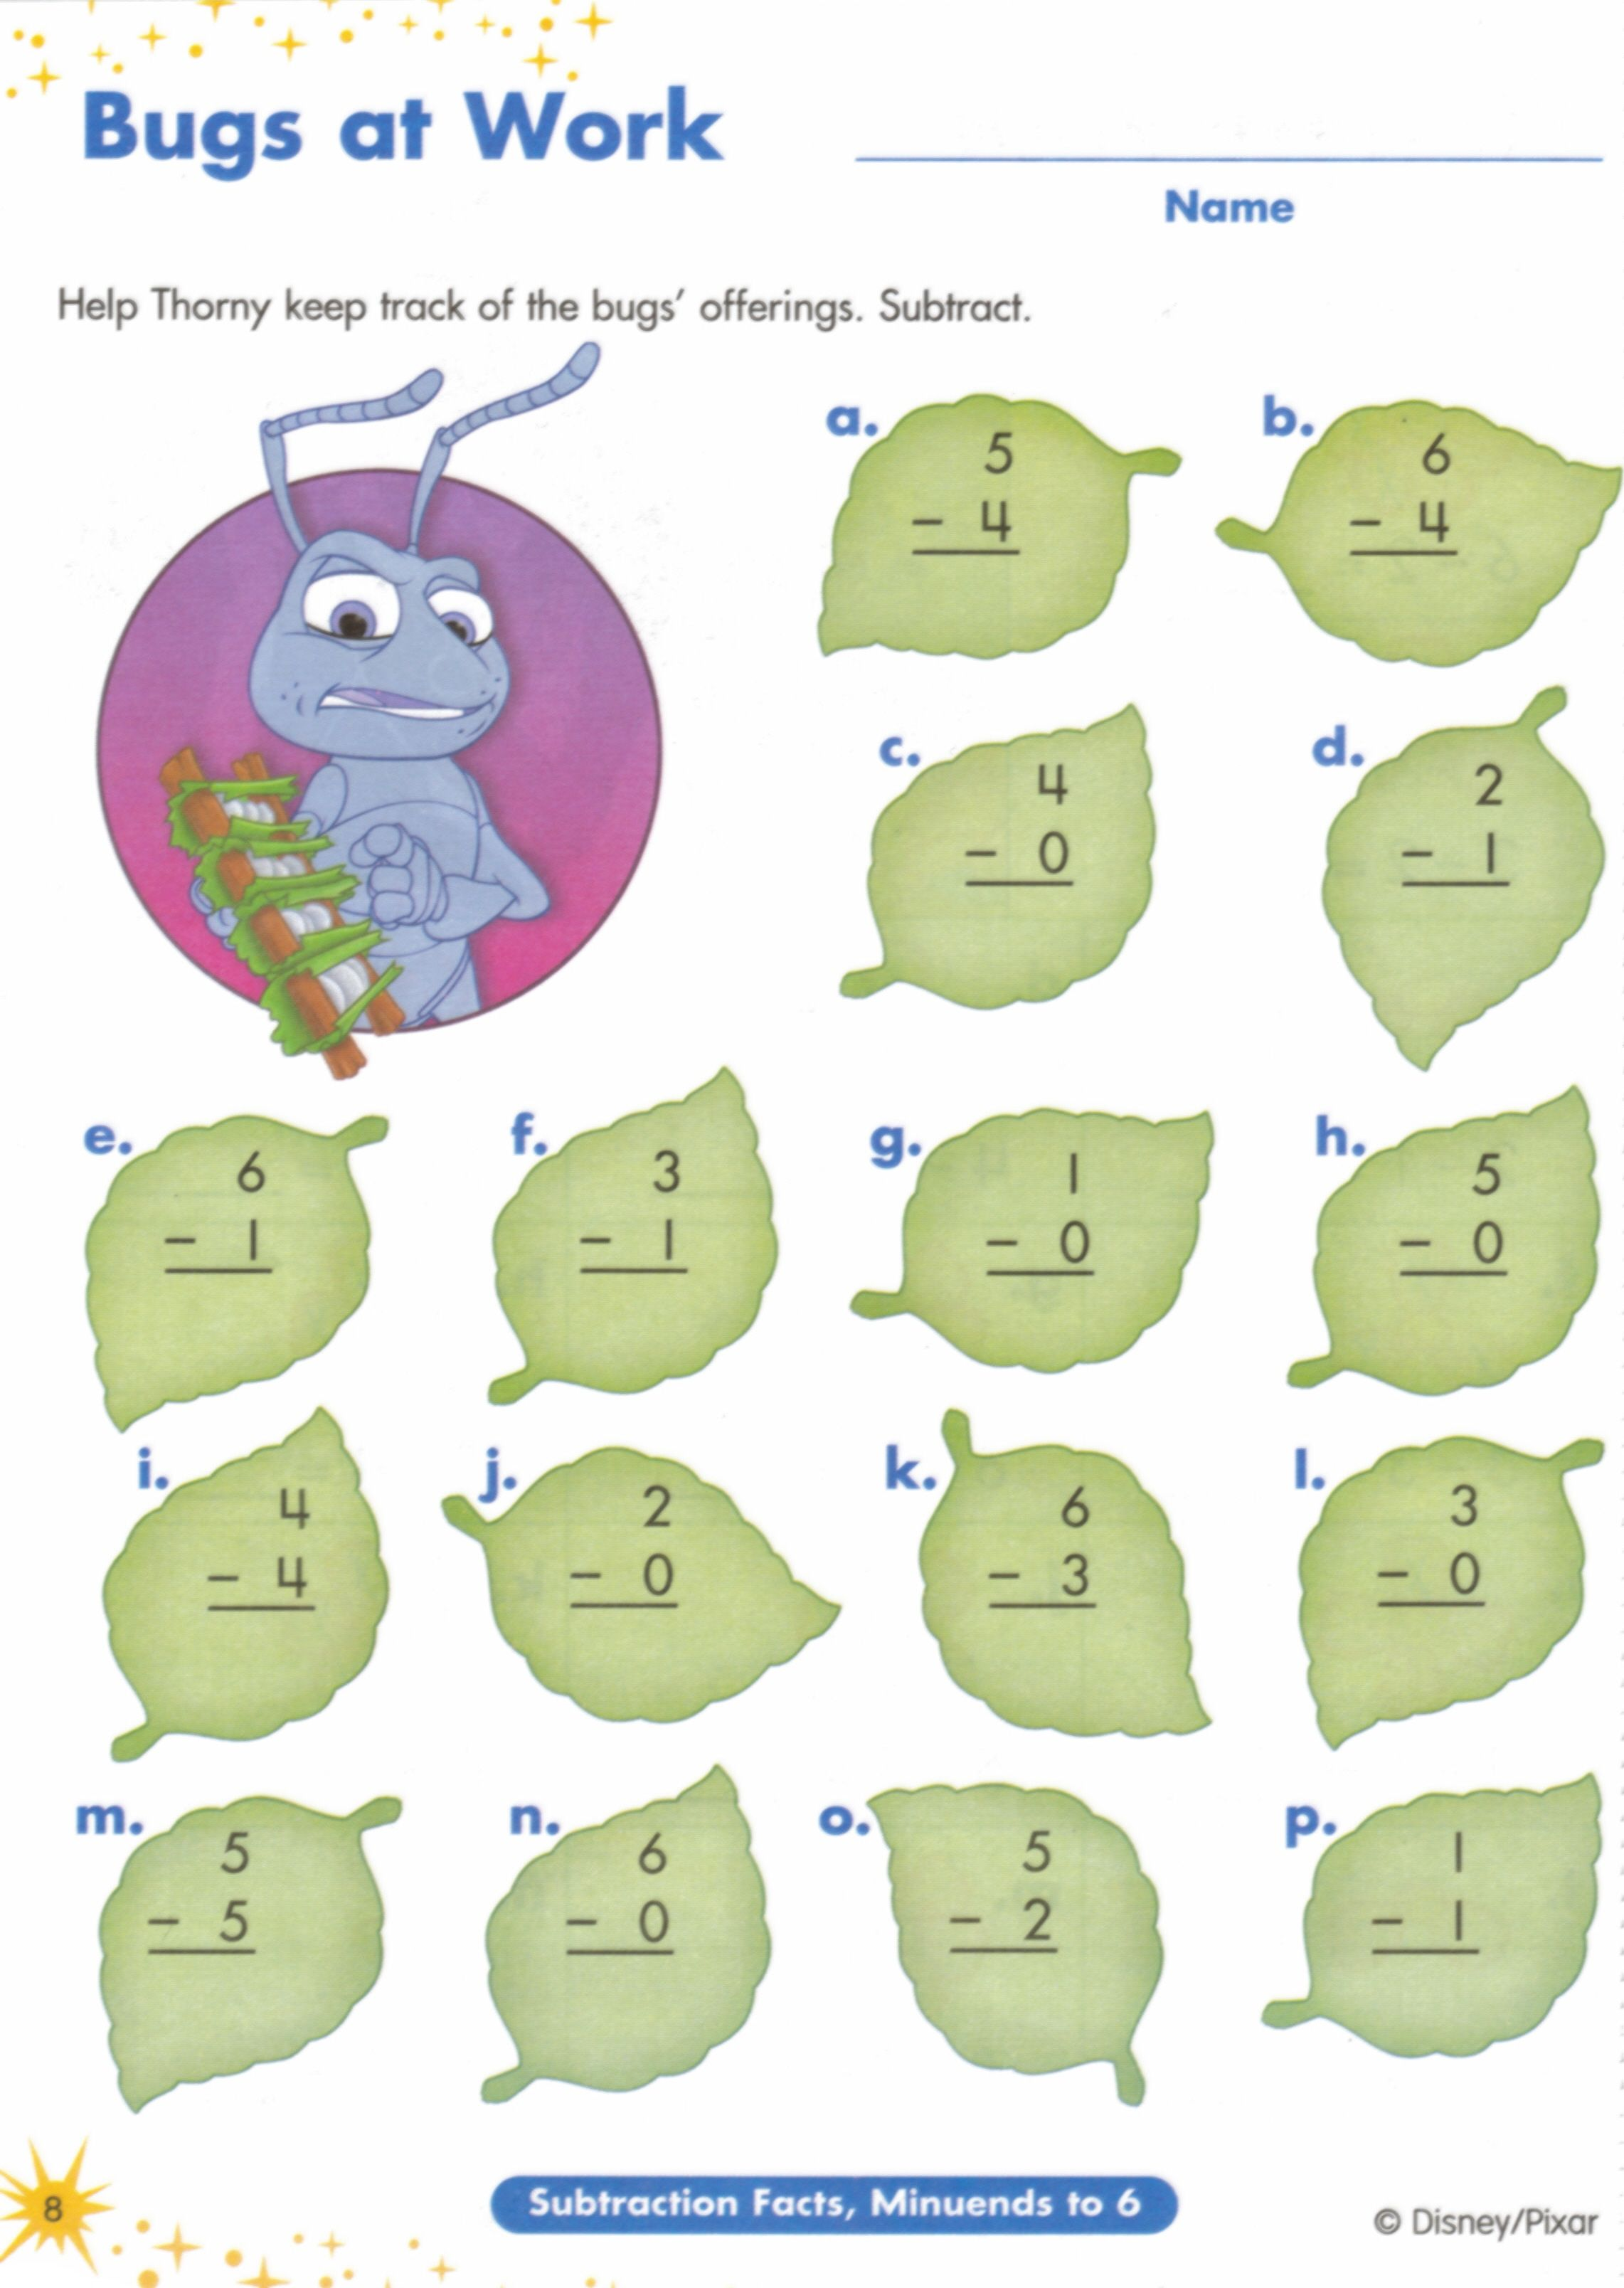 Proatmealus  Inspiring  Images About Worksheets On Pinterest  Fun Facts For Kids  With Excellent  Images About Worksheets On Pinterest  Fun Facts For Kids Earth Day Worksheets And Jungles With Lovely Chemistry Scientific Notation Worksheet Answers Also Spanish Weather And Seasons Worksheets In Addition Decimal Printable Worksheets And Sieve Of Eratosthenes Worksheet Printable As Well As Classifying Matter Worksheet Key Additionally Limiting Reagents Worksheet From Pinterestcom With Proatmealus  Excellent  Images About Worksheets On Pinterest  Fun Facts For Kids  With Lovely  Images About Worksheets On Pinterest  Fun Facts For Kids Earth Day Worksheets And Jungles And Inspiring Chemistry Scientific Notation Worksheet Answers Also Spanish Weather And Seasons Worksheets In Addition Decimal Printable Worksheets From Pinterestcom